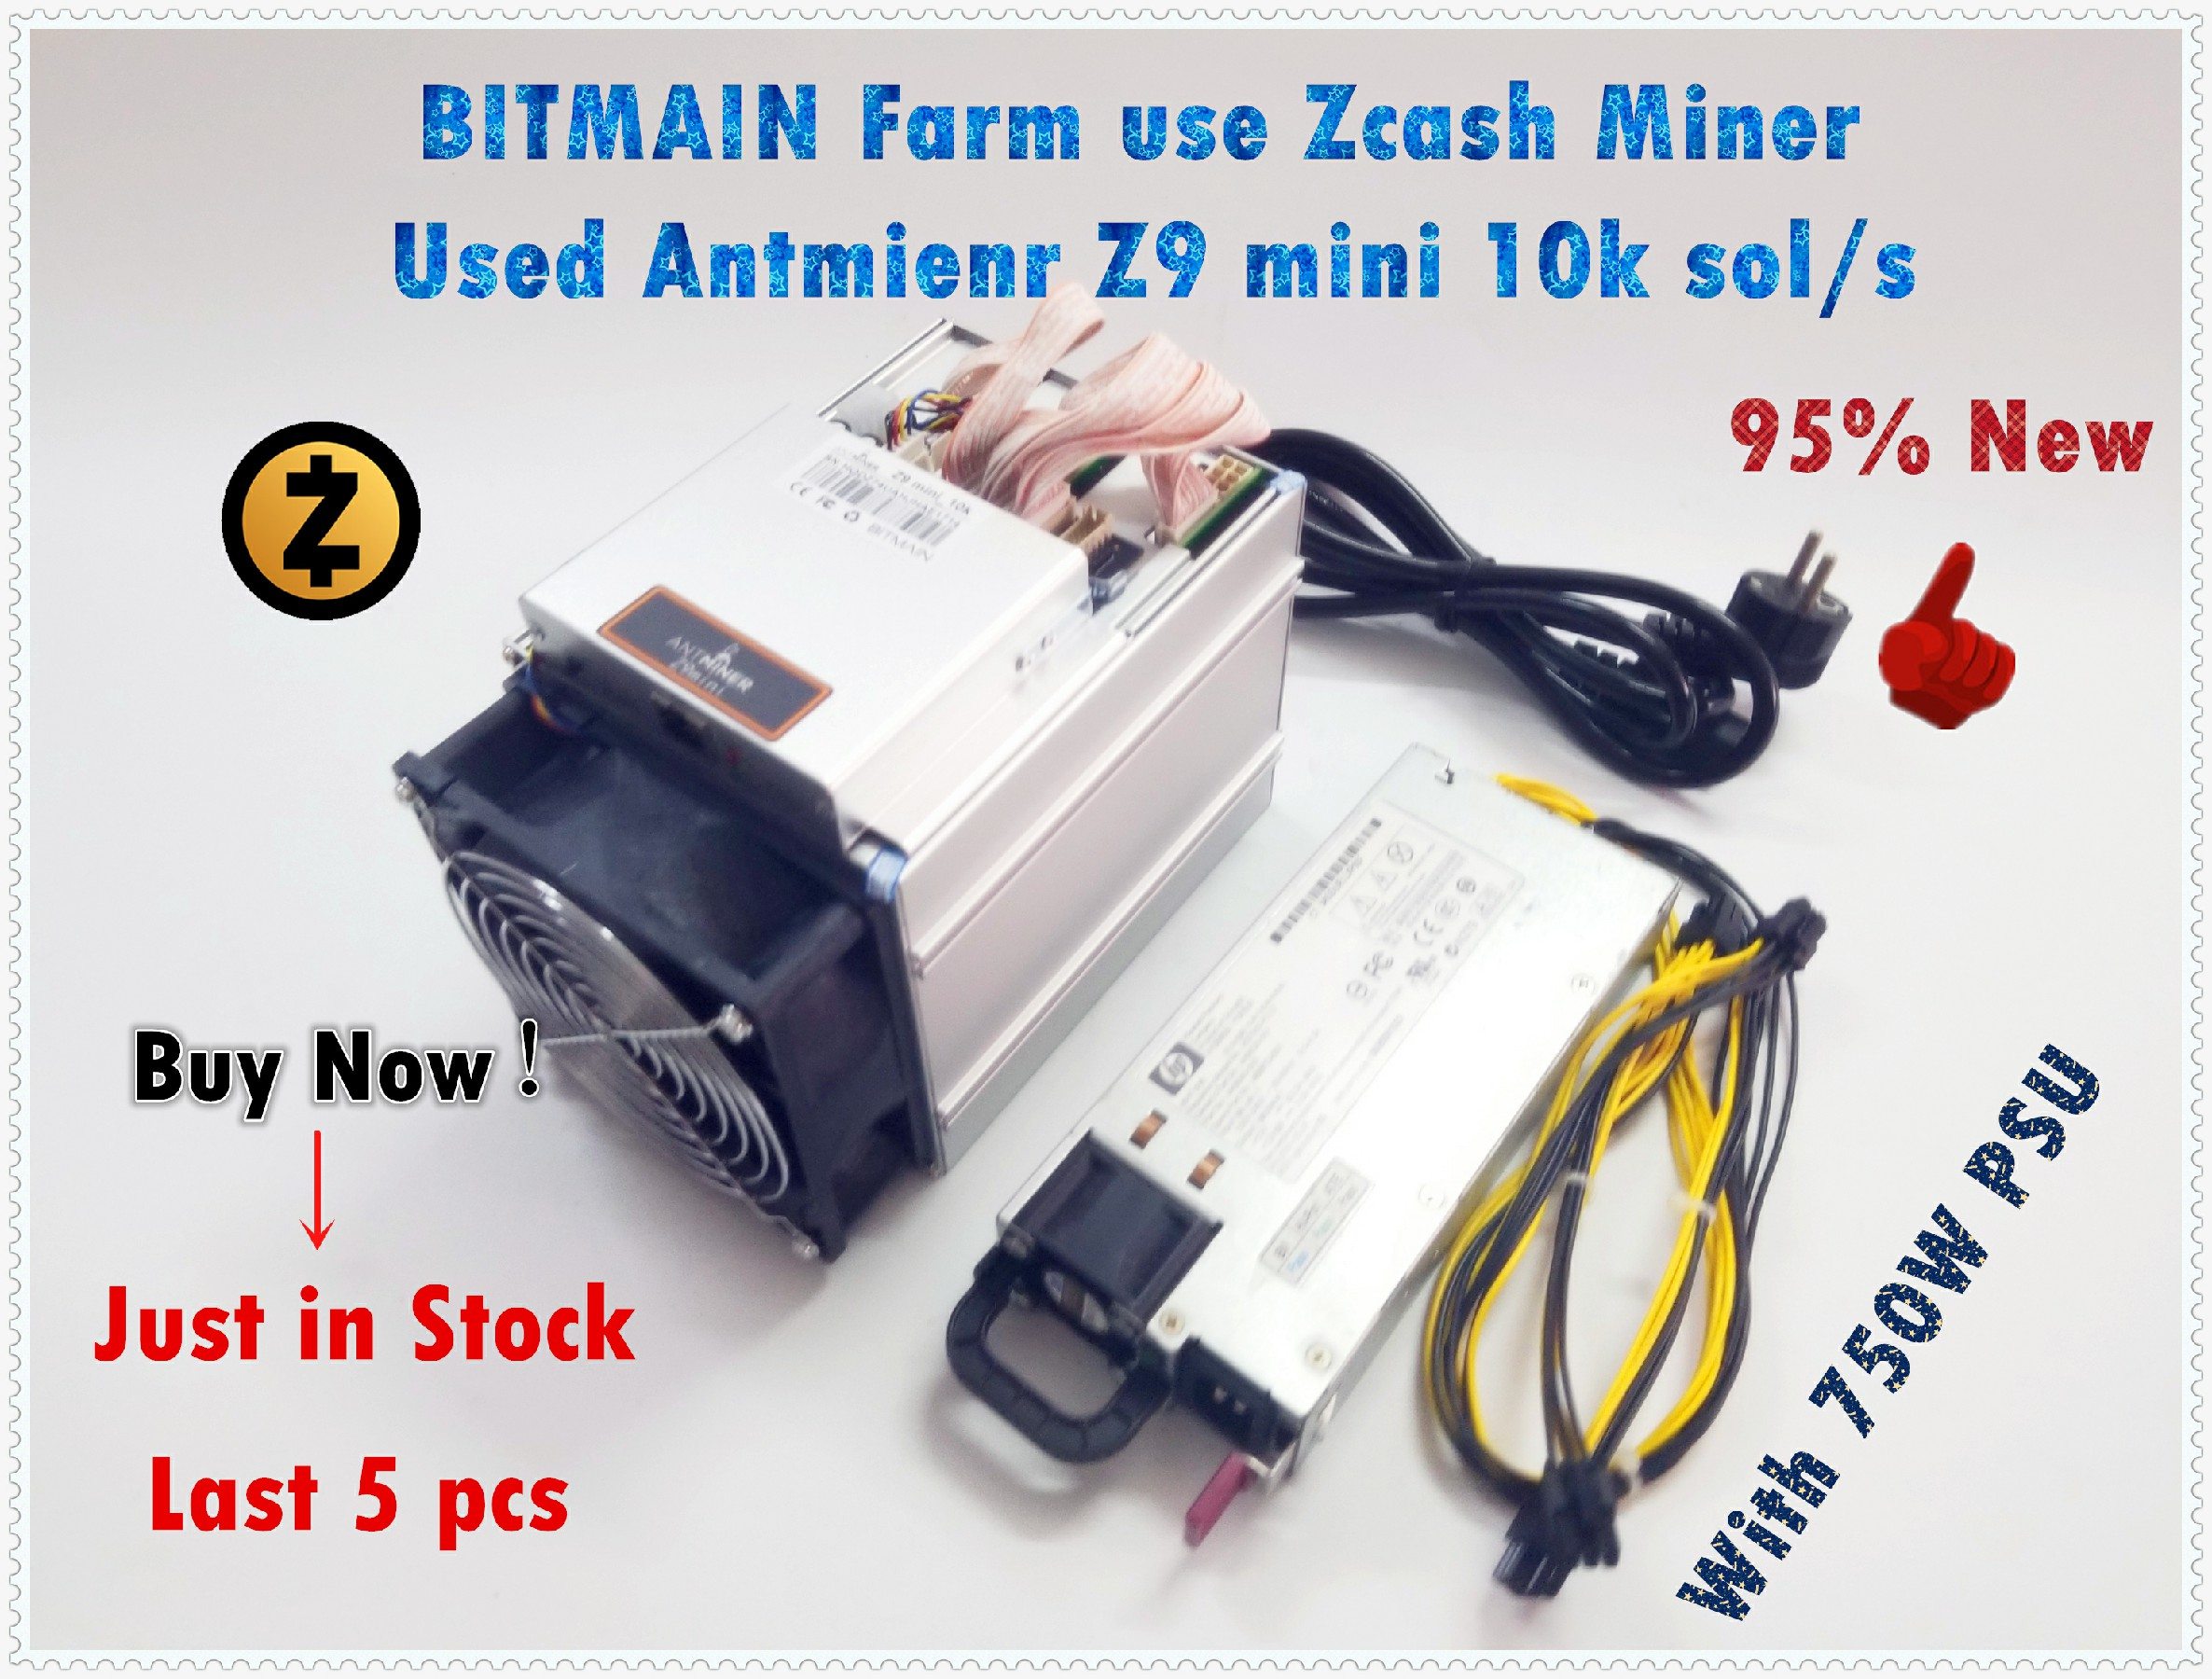 Ship in 24 hours Used ZCASH Miner Bitmain Antminer Z9 Mini 10k Sol/s 300W Asic Equihash Miner With 750W Power Supply 1